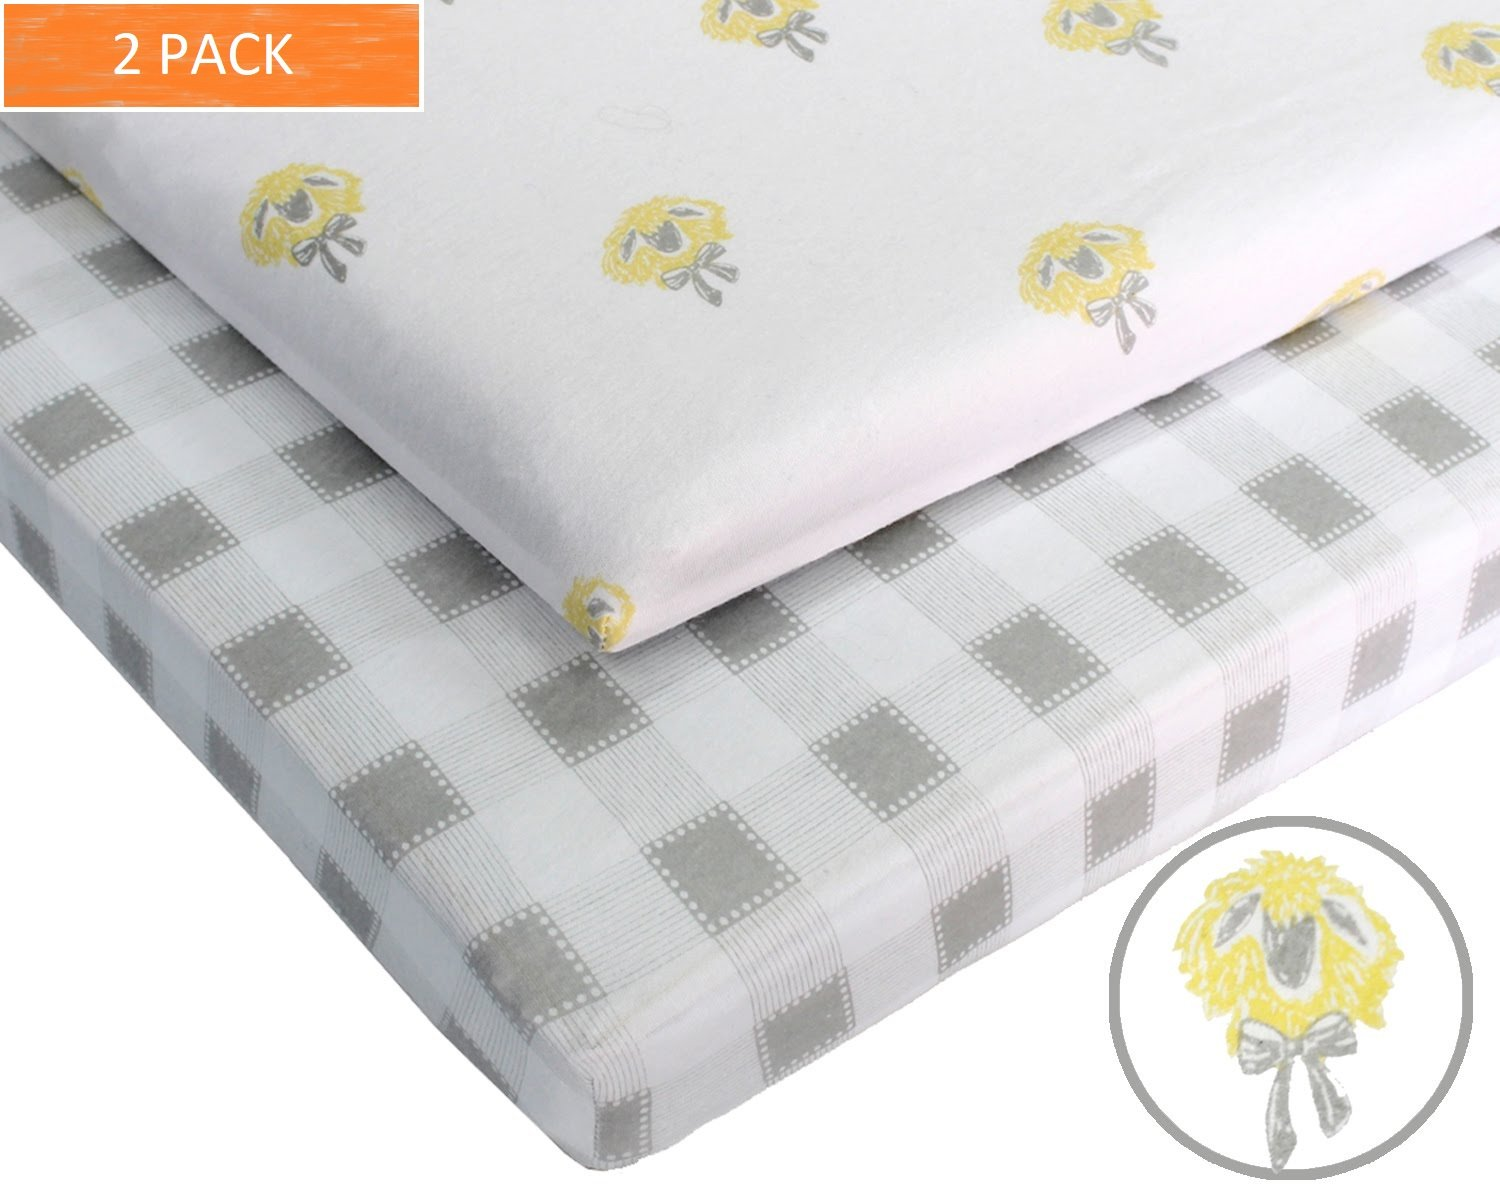 Pack N Play 100% Jersey Cotton Crib Sheets (2 Pack) Baby Boy and Baby Girl (Gender Neutral) Custom Farm Designs (Gray and White Gingham and Gray and Yellow Sheep) by Hartley Ash Machine Washable